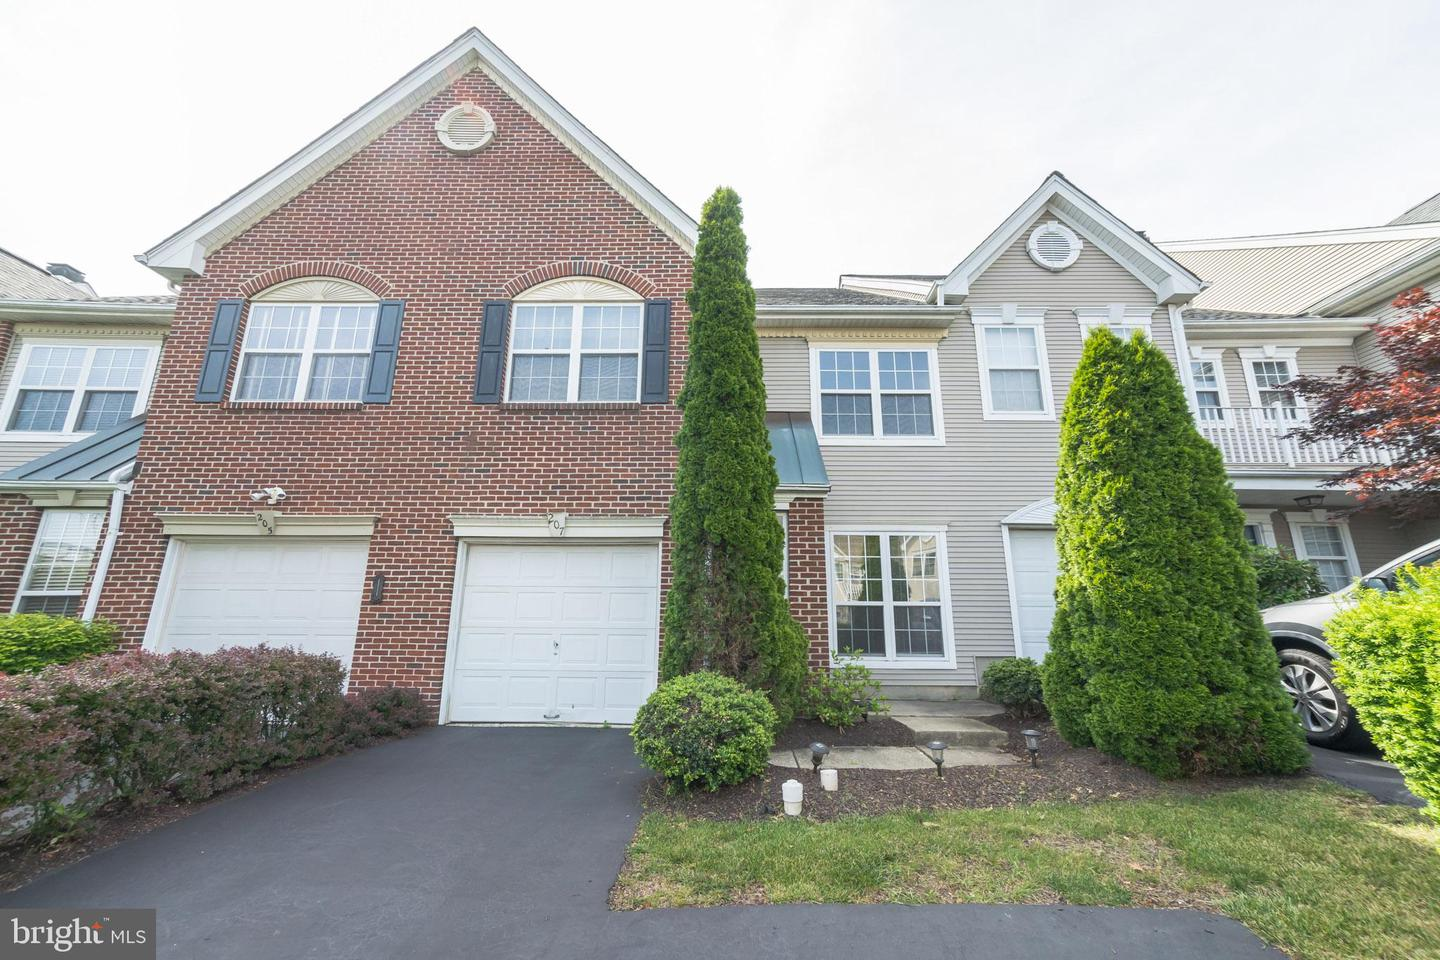 207 Valley Forge Lookout Place Wayne, PA 19087